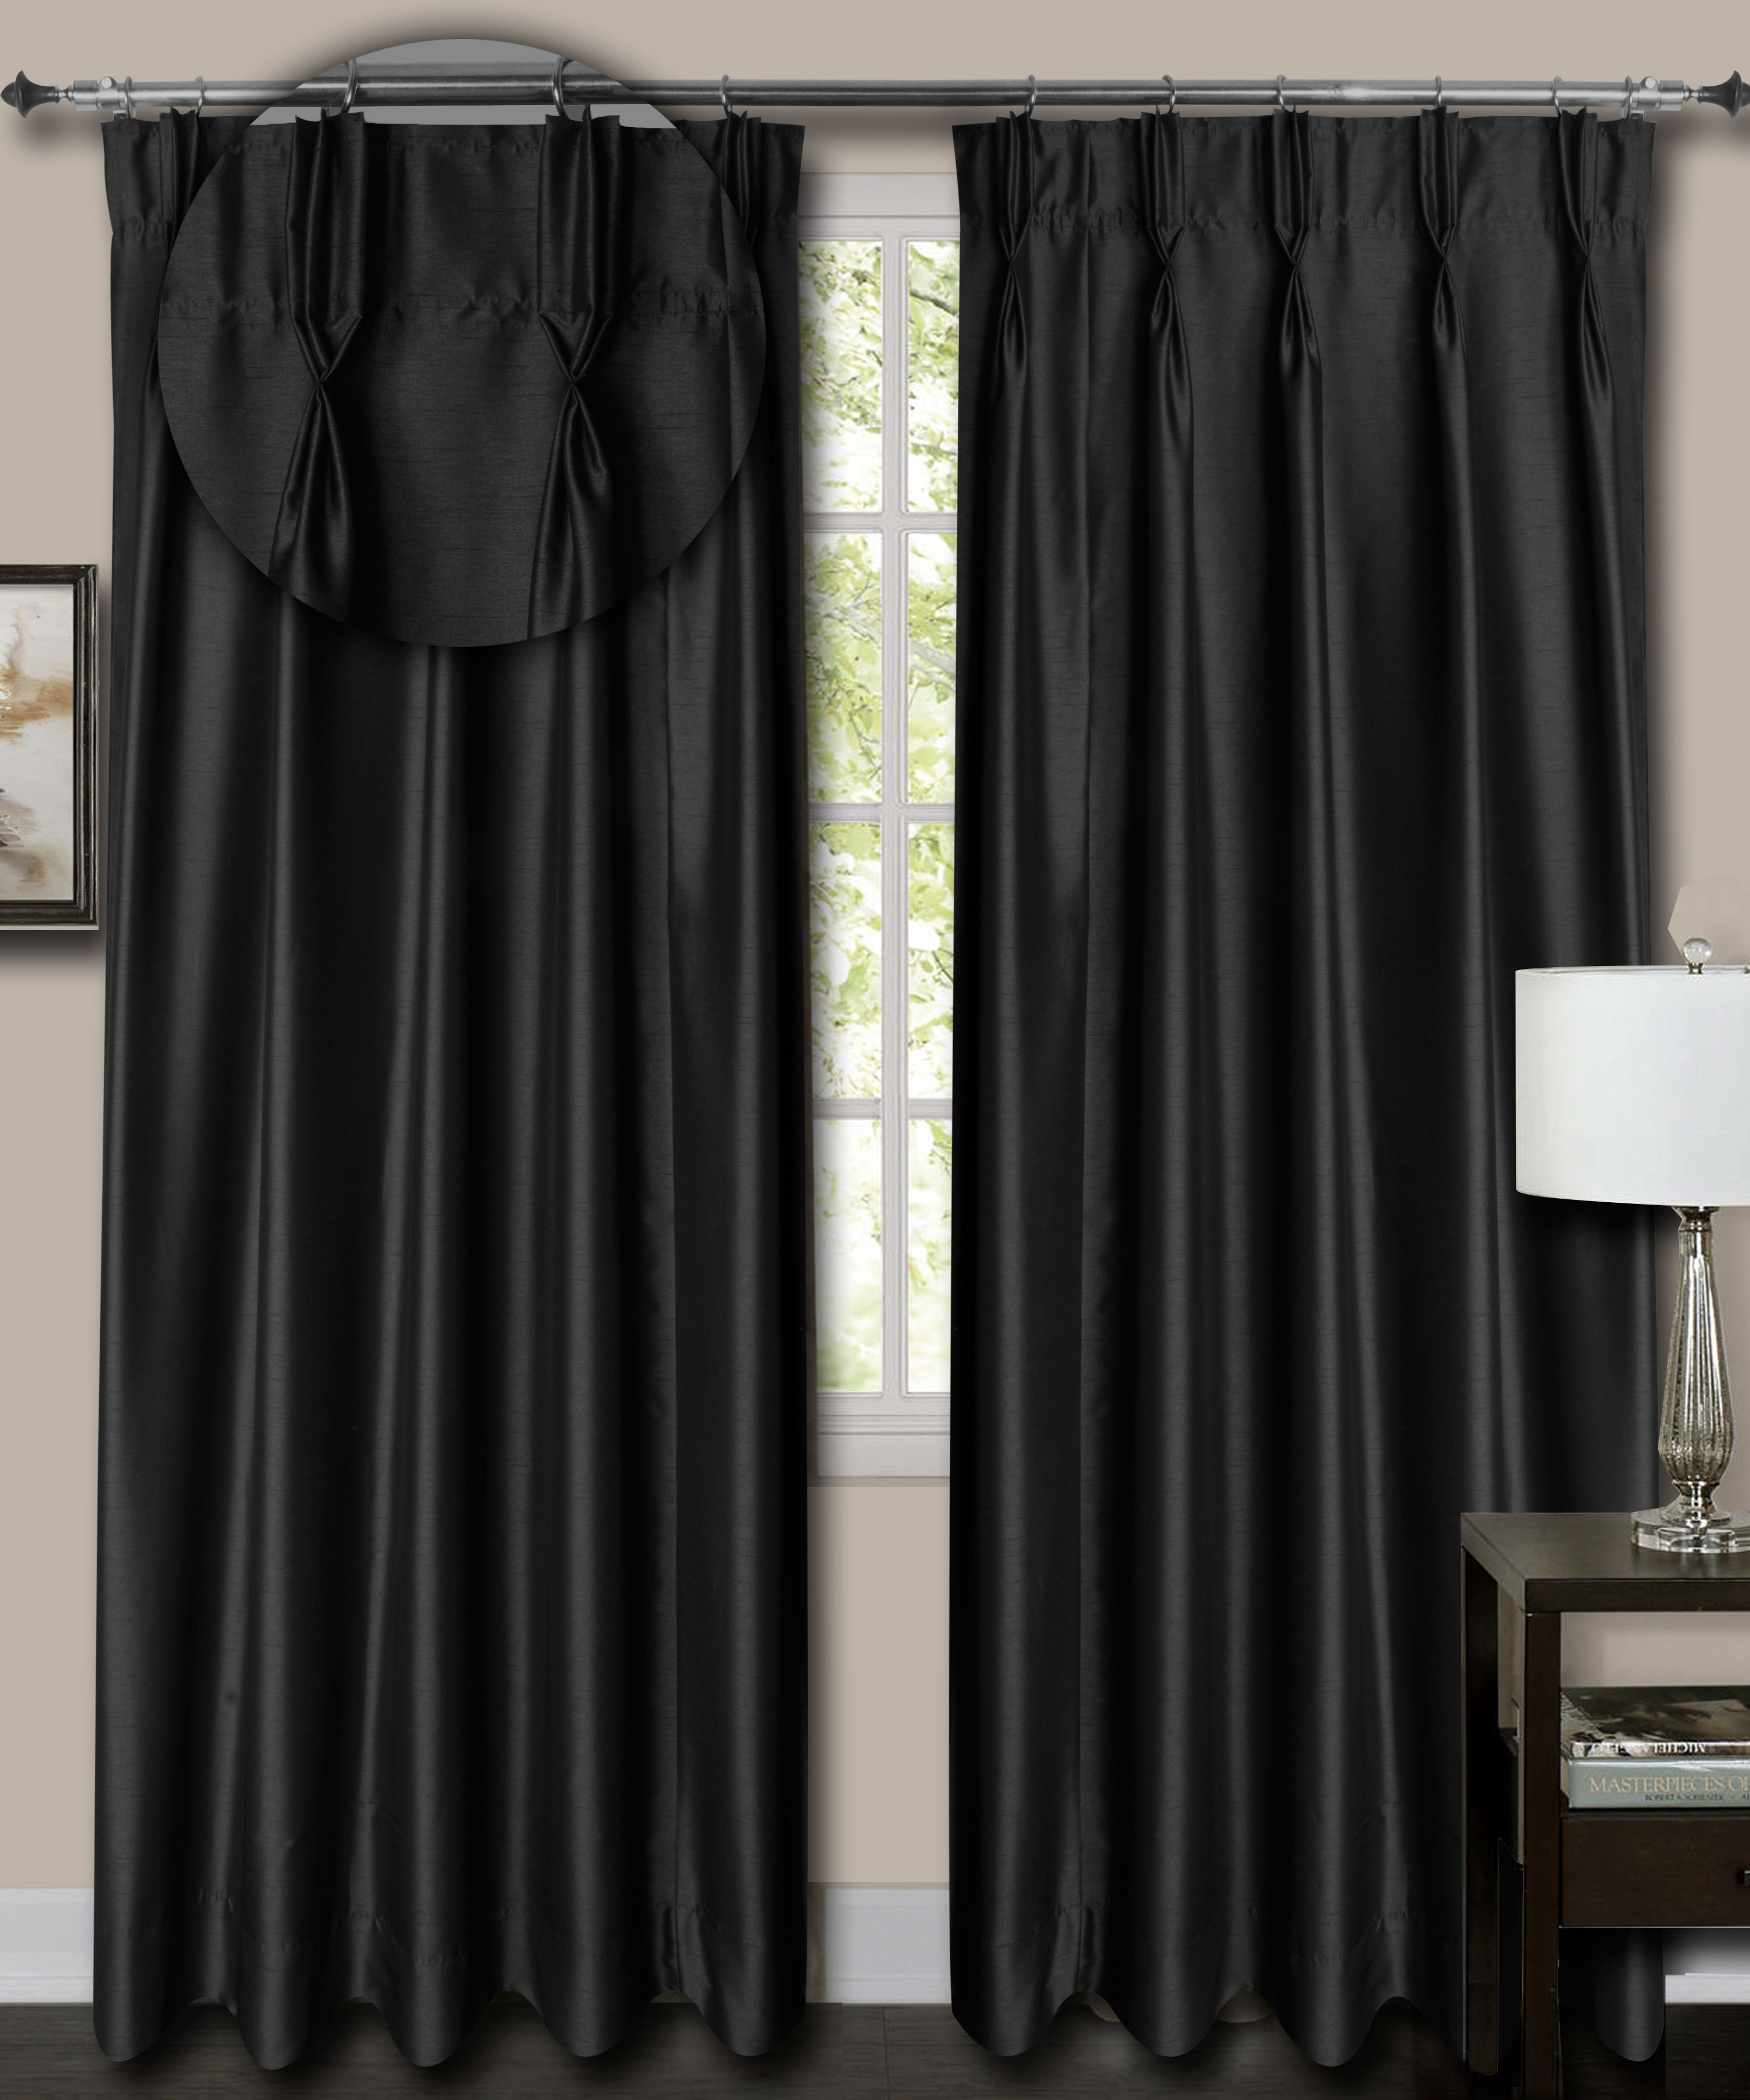 """French Pleat Top Black Faux Silk Dupioni Curtains. (24"""" Wide,9 Feet Long,Blackout Lining)"""